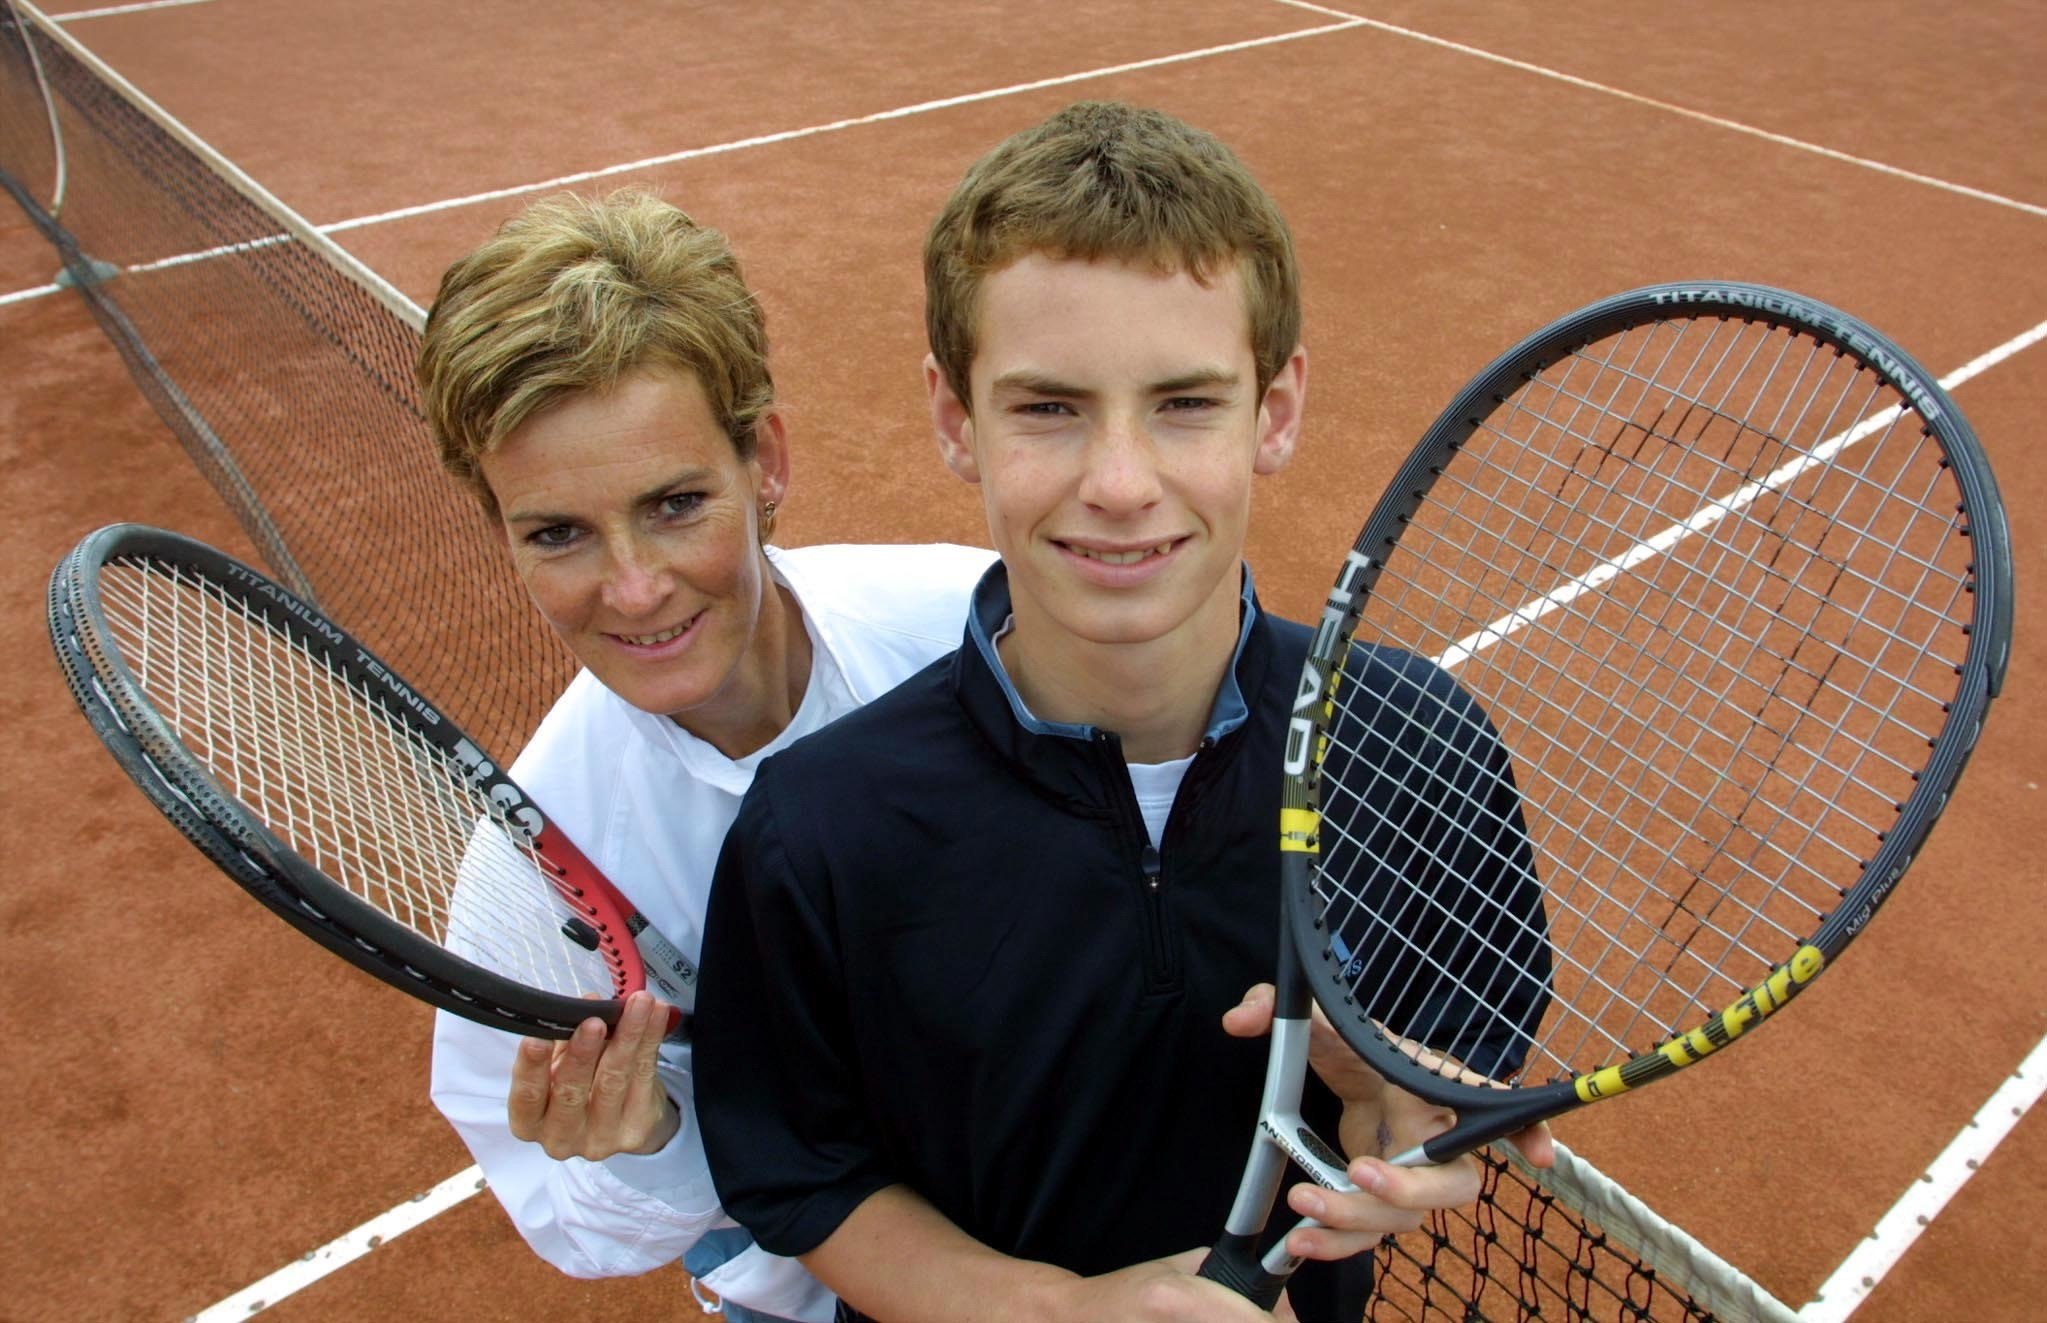 Judy with a 14-year-old Andy Murray (John Lindsay / Perthshire Picture Agency)